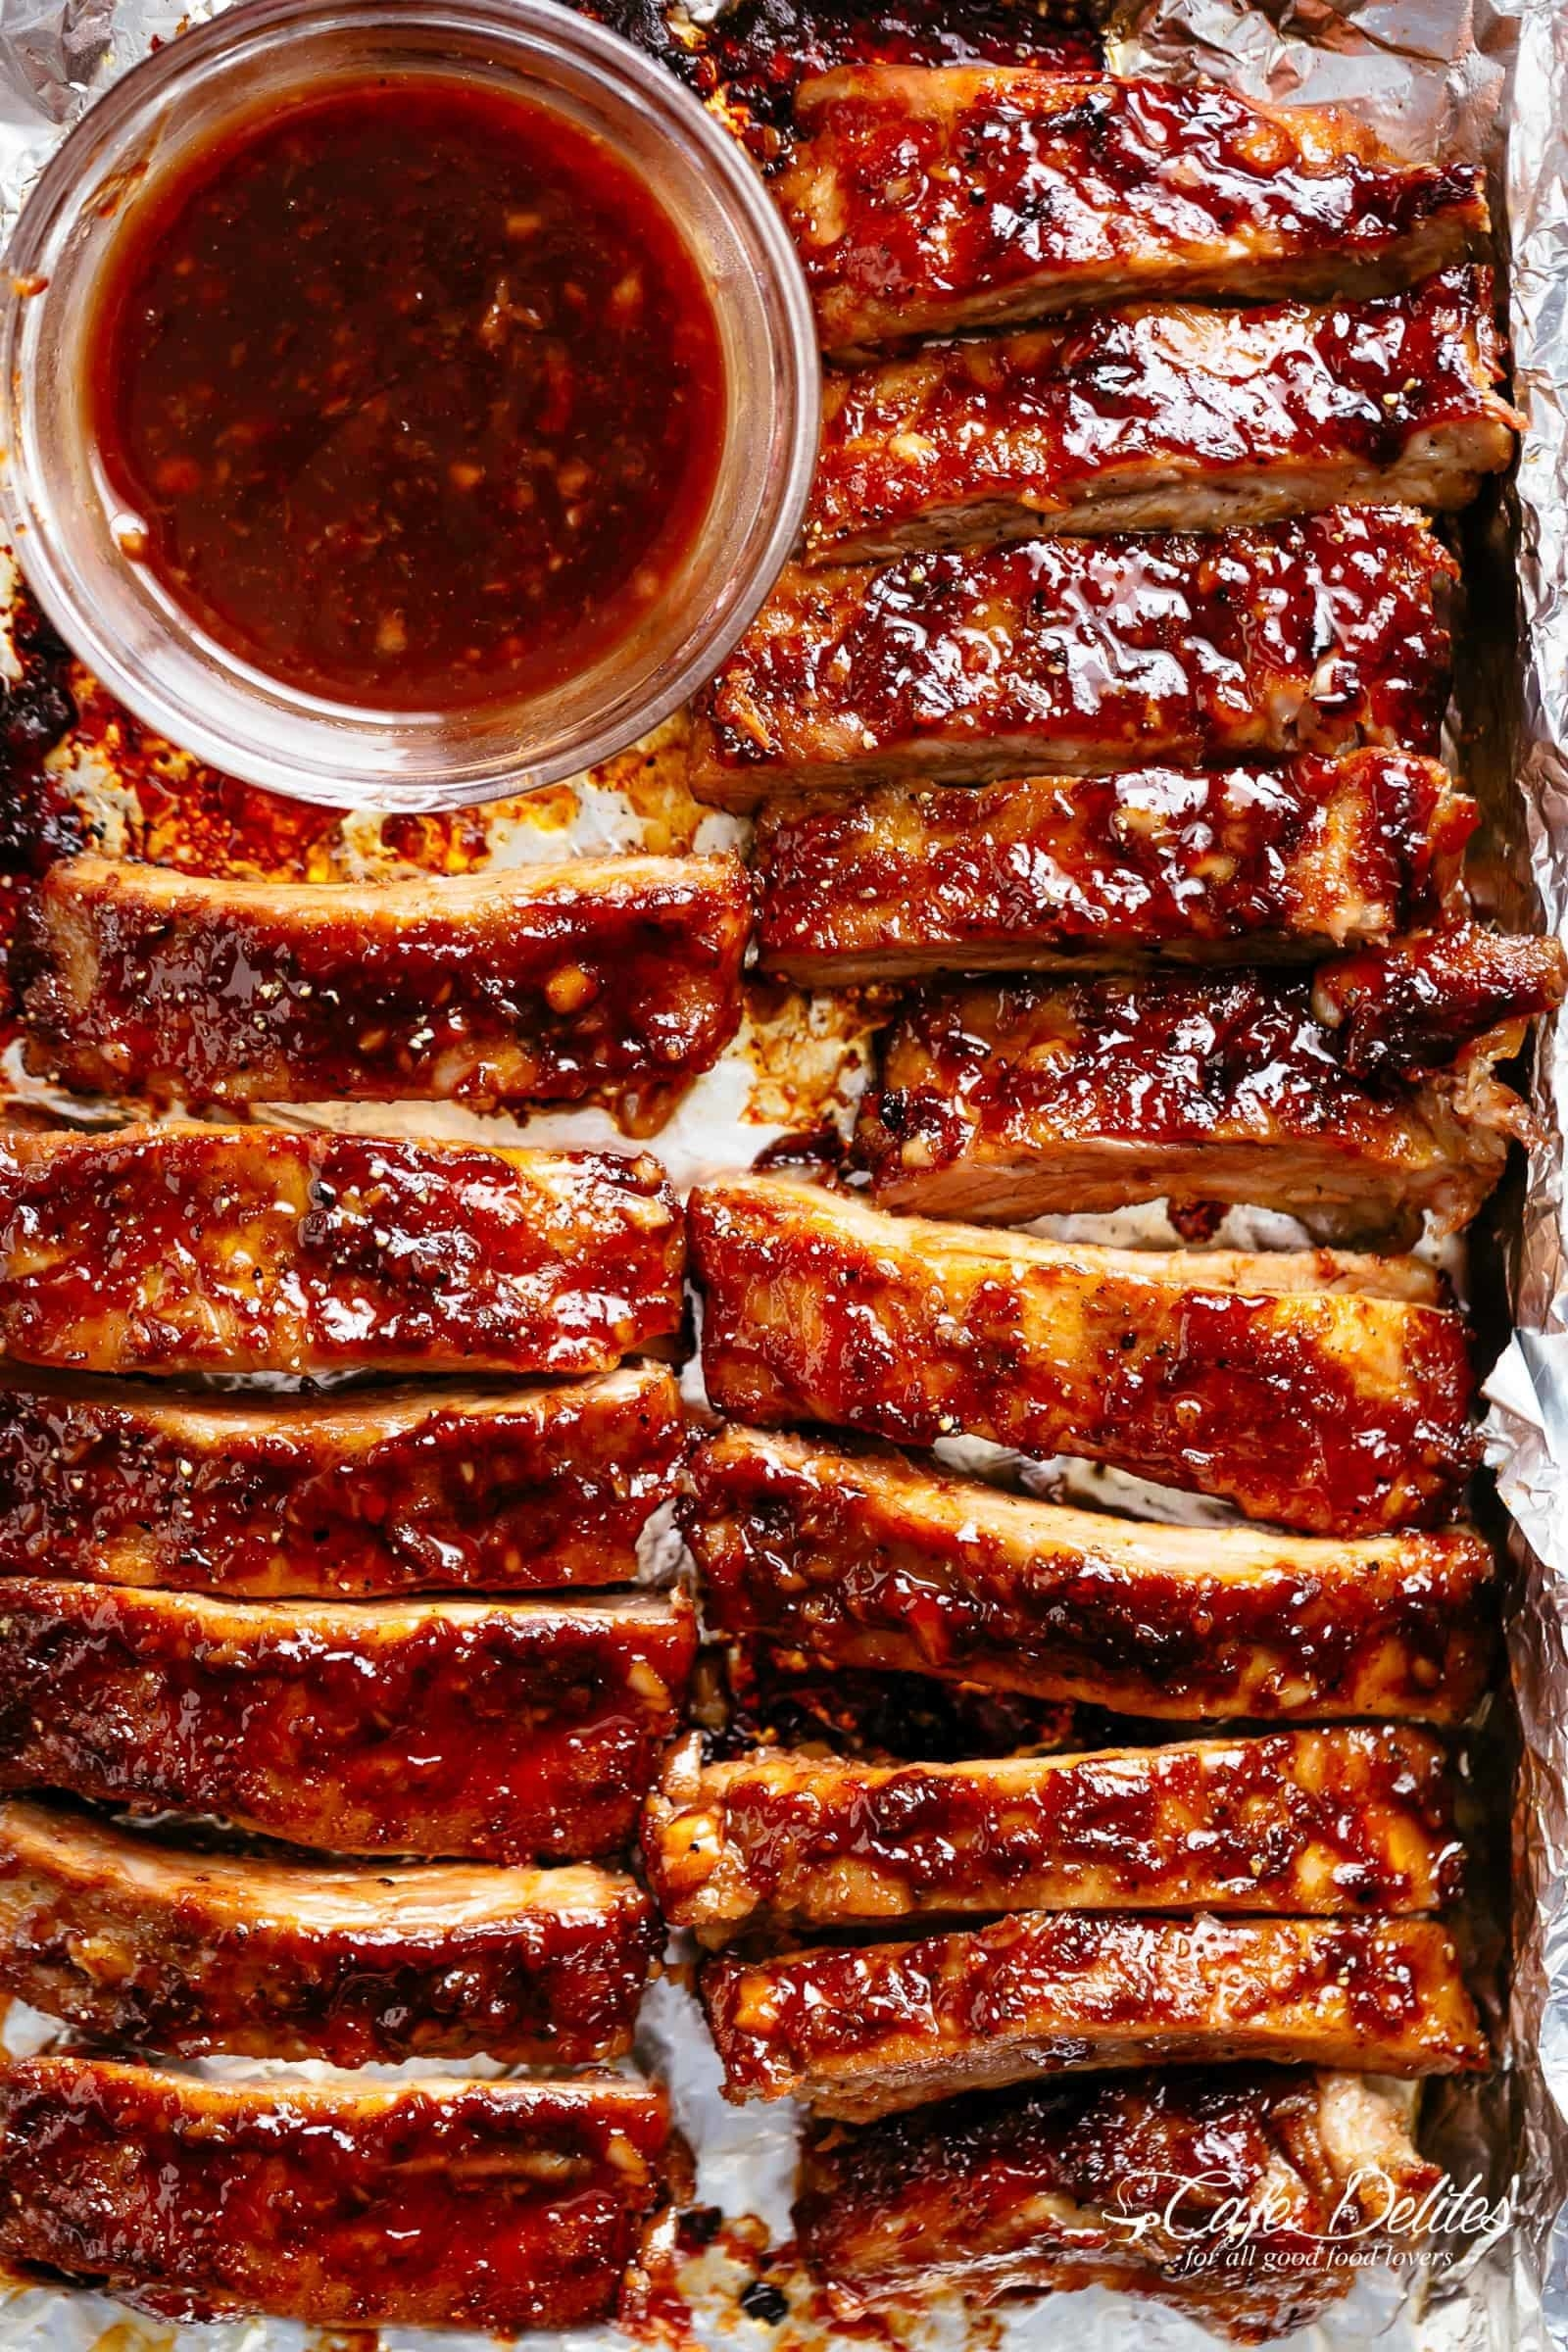 A dozen-or-so ribs brushed with barbecue sauce on a foil-lined baking sheet.